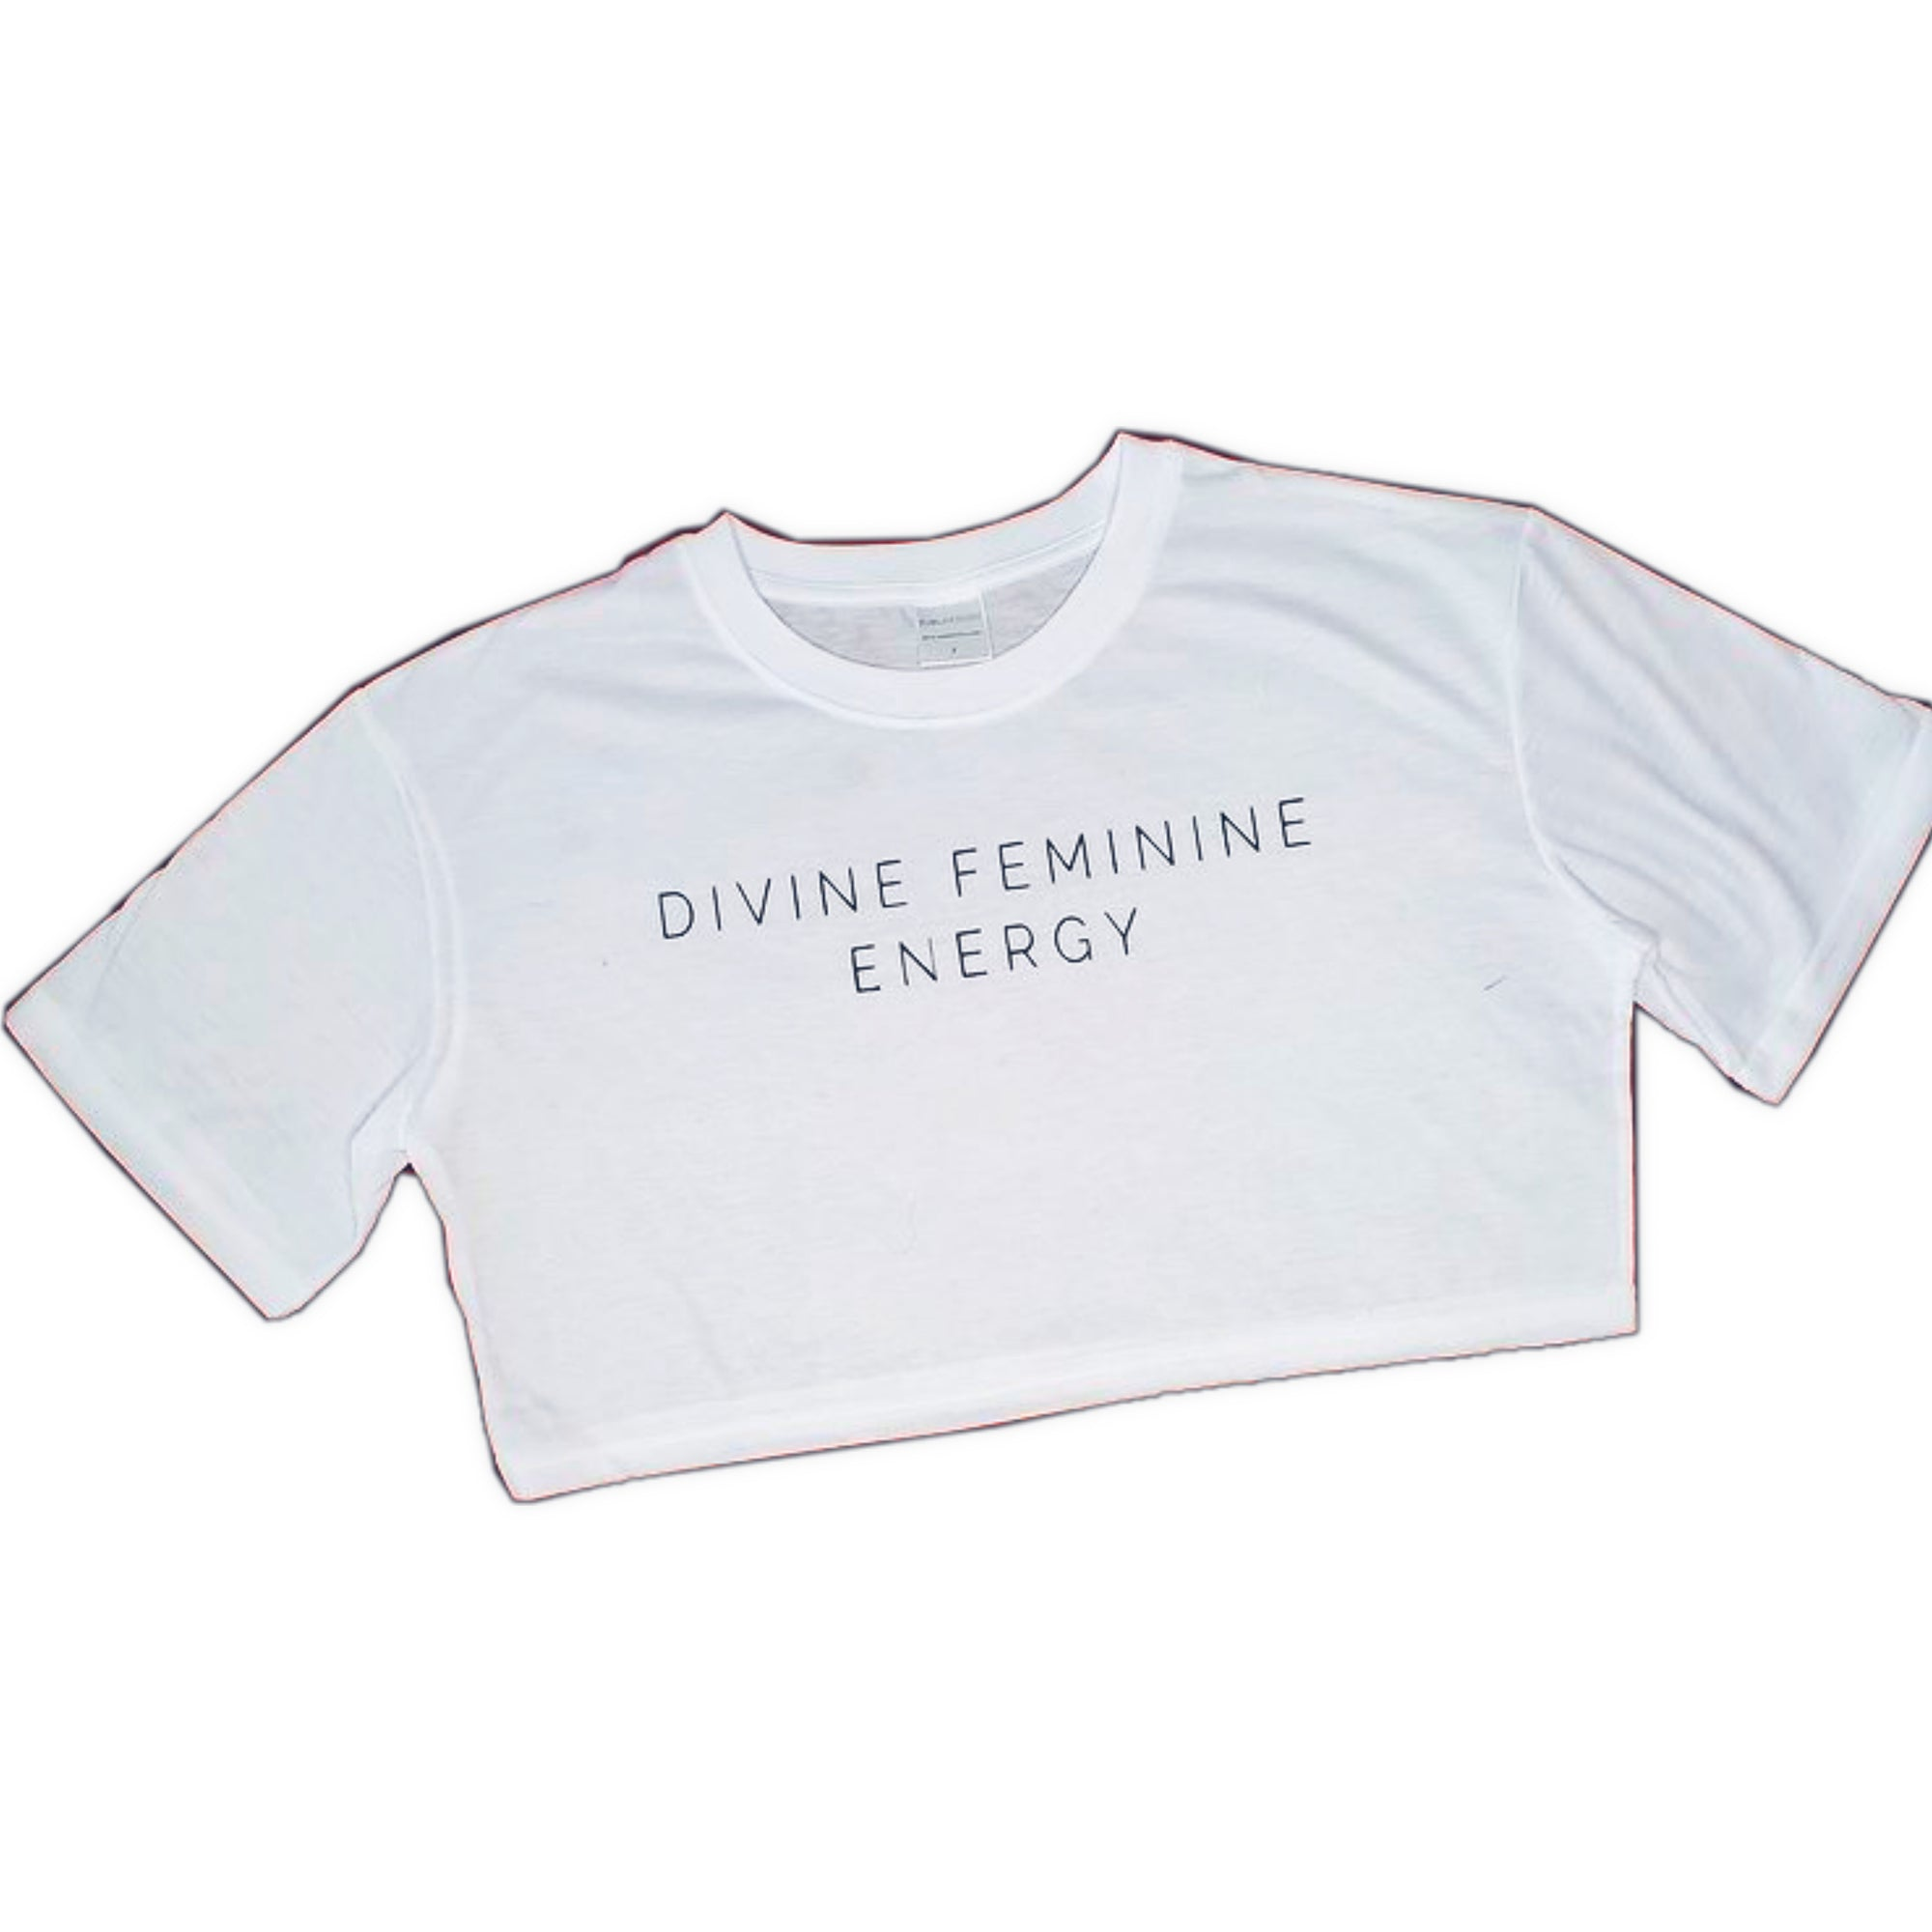 DIVINE FEMININE ENERGY- Crop top white